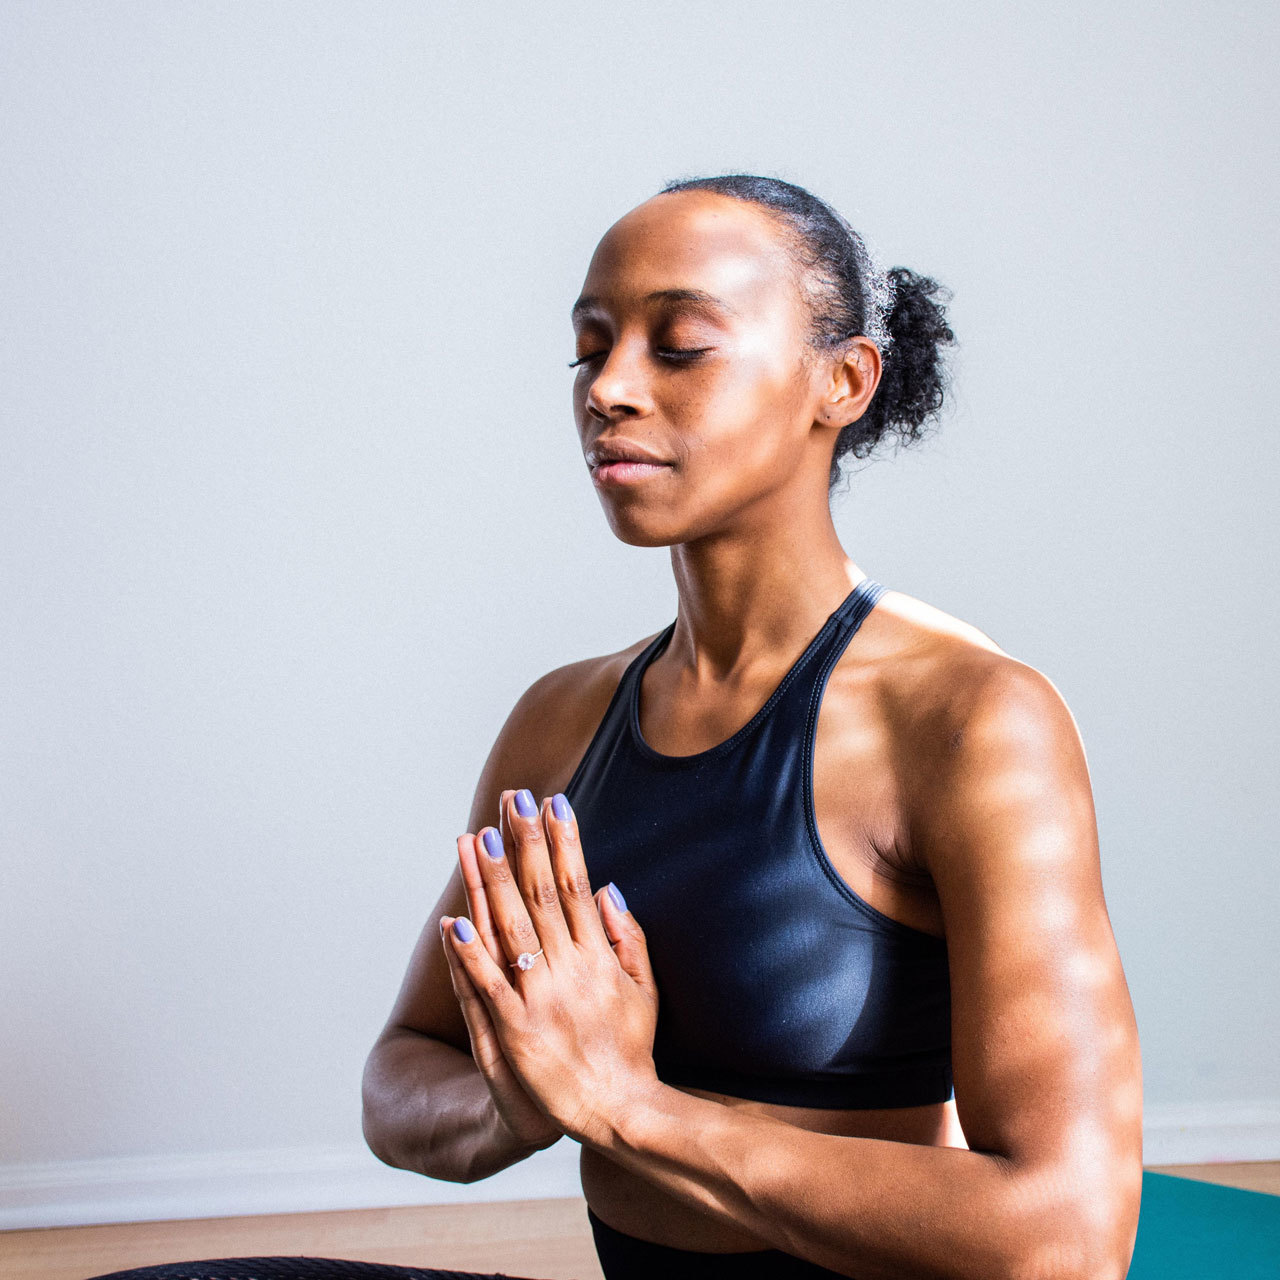 Woman wearing a black sports bra with her palms together in front of her chest and her eyes closed